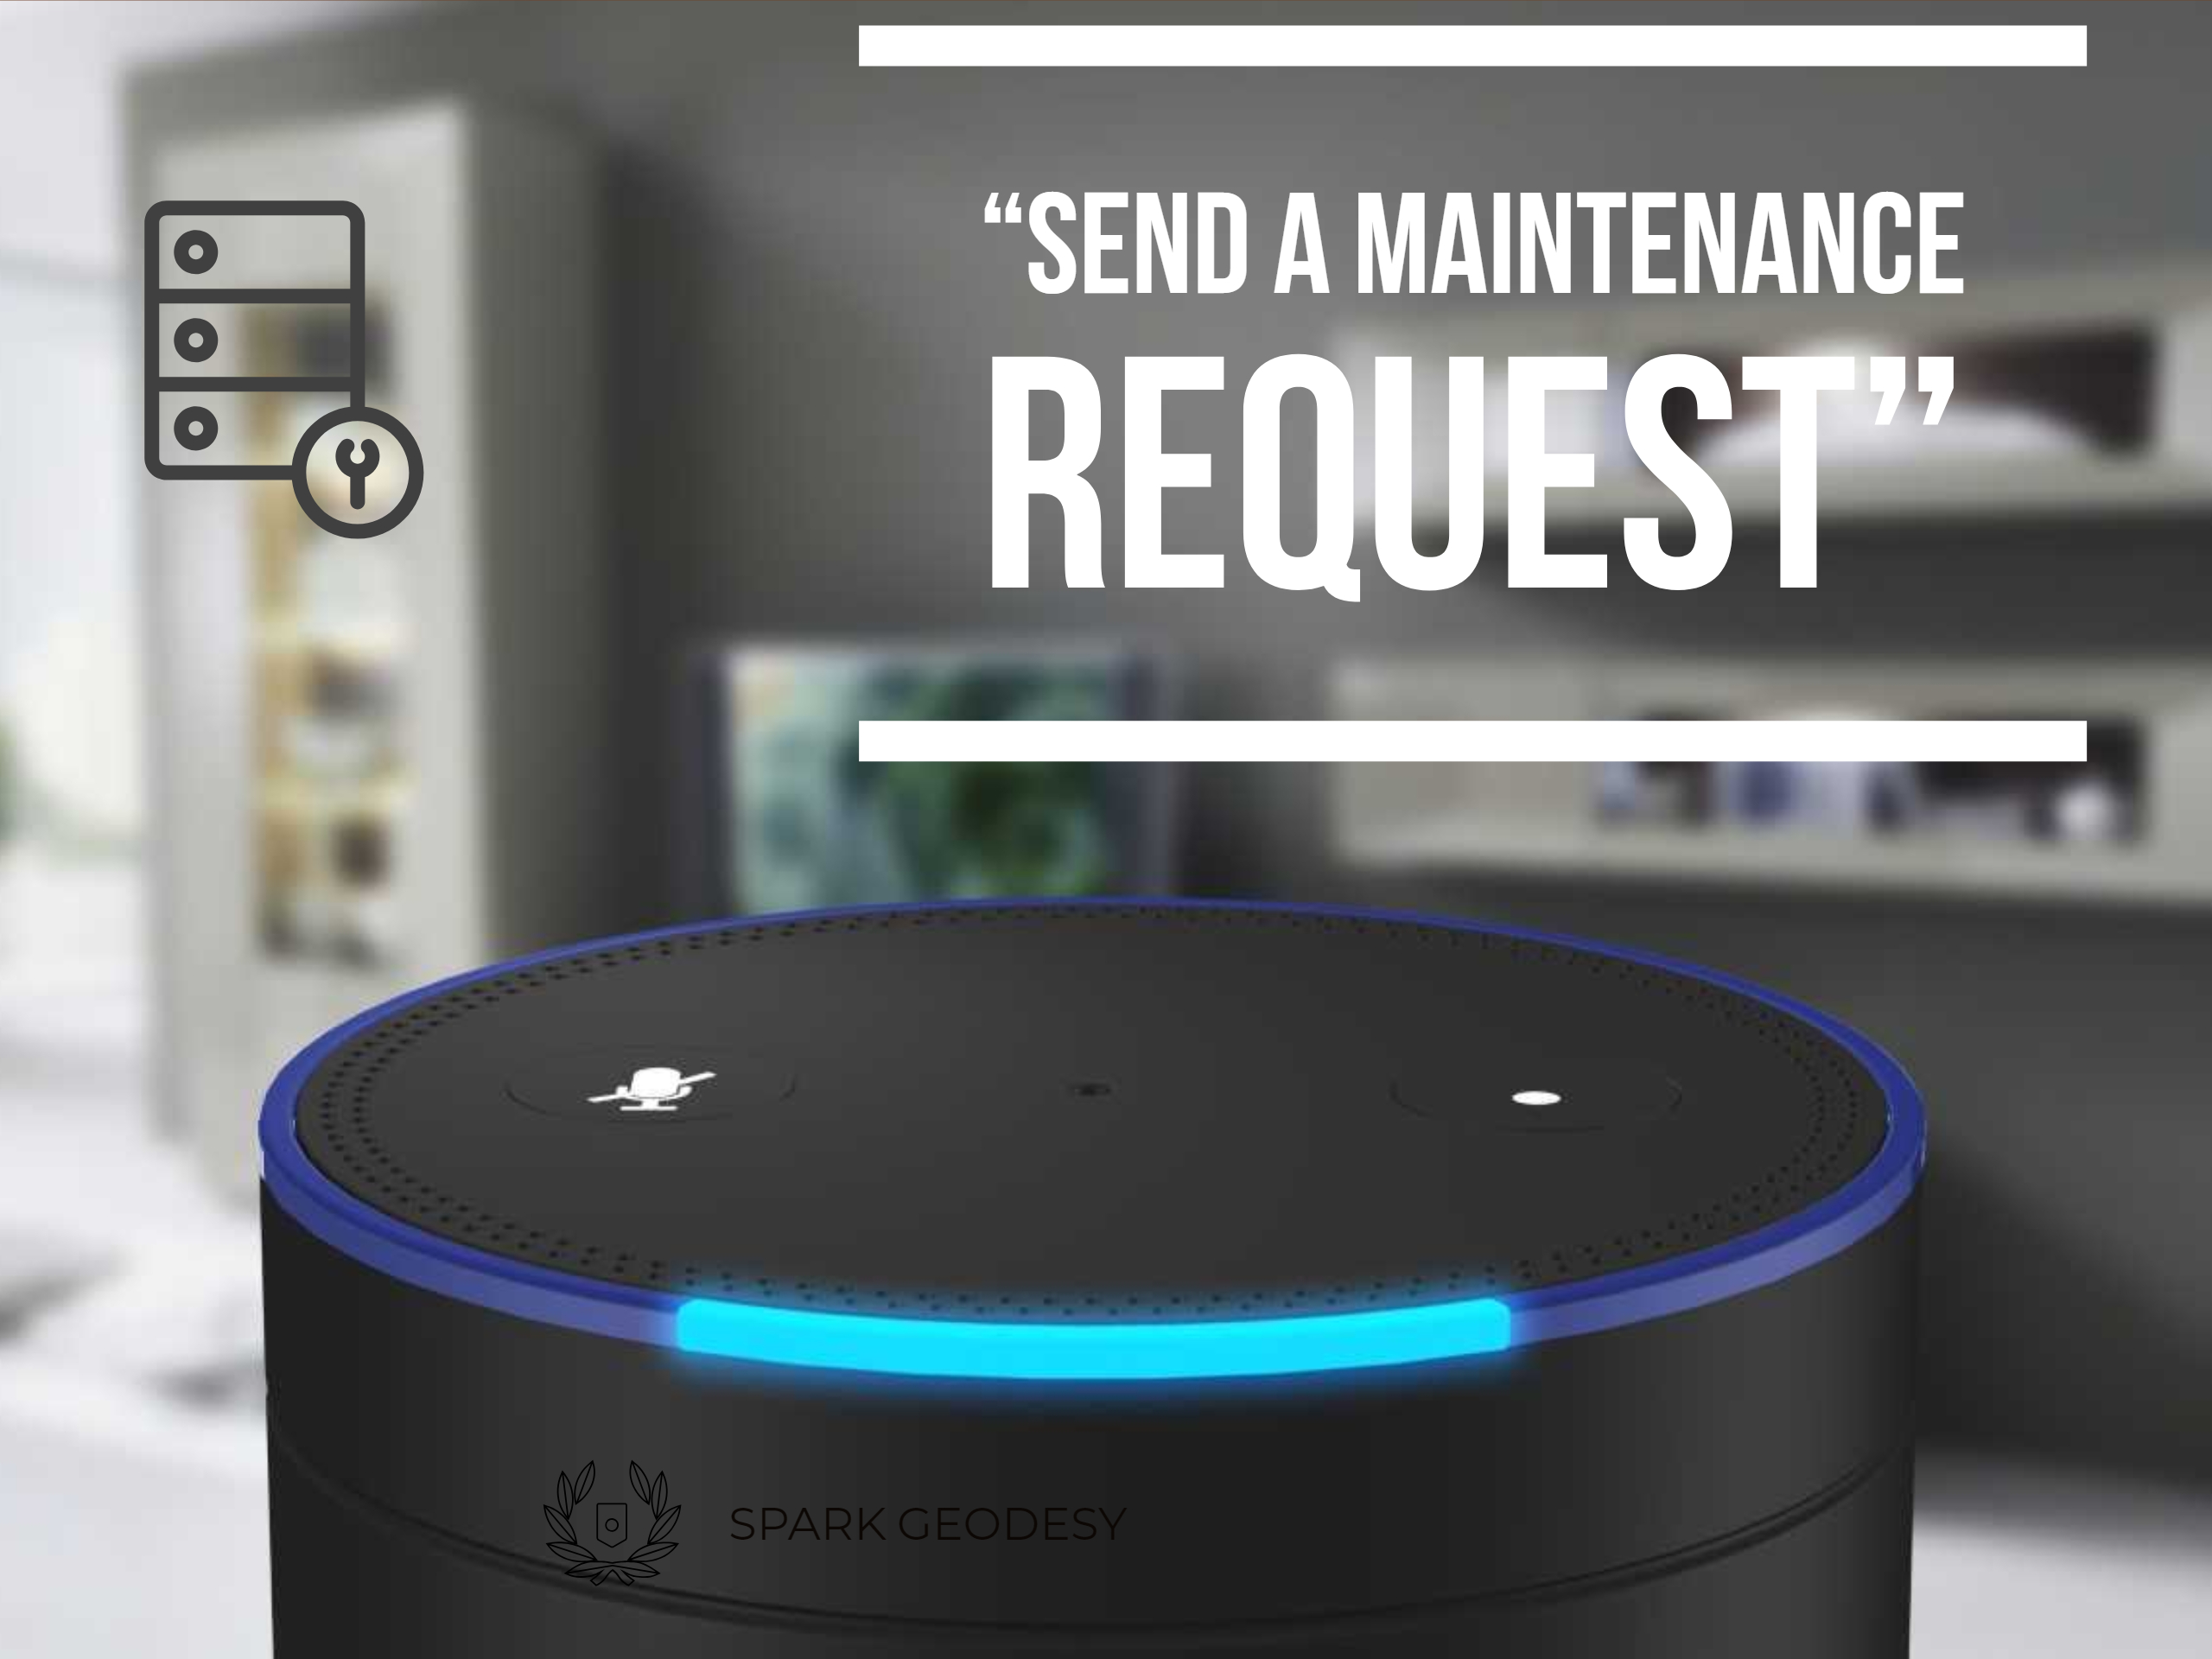 Amazon Echo - Maintenance Request